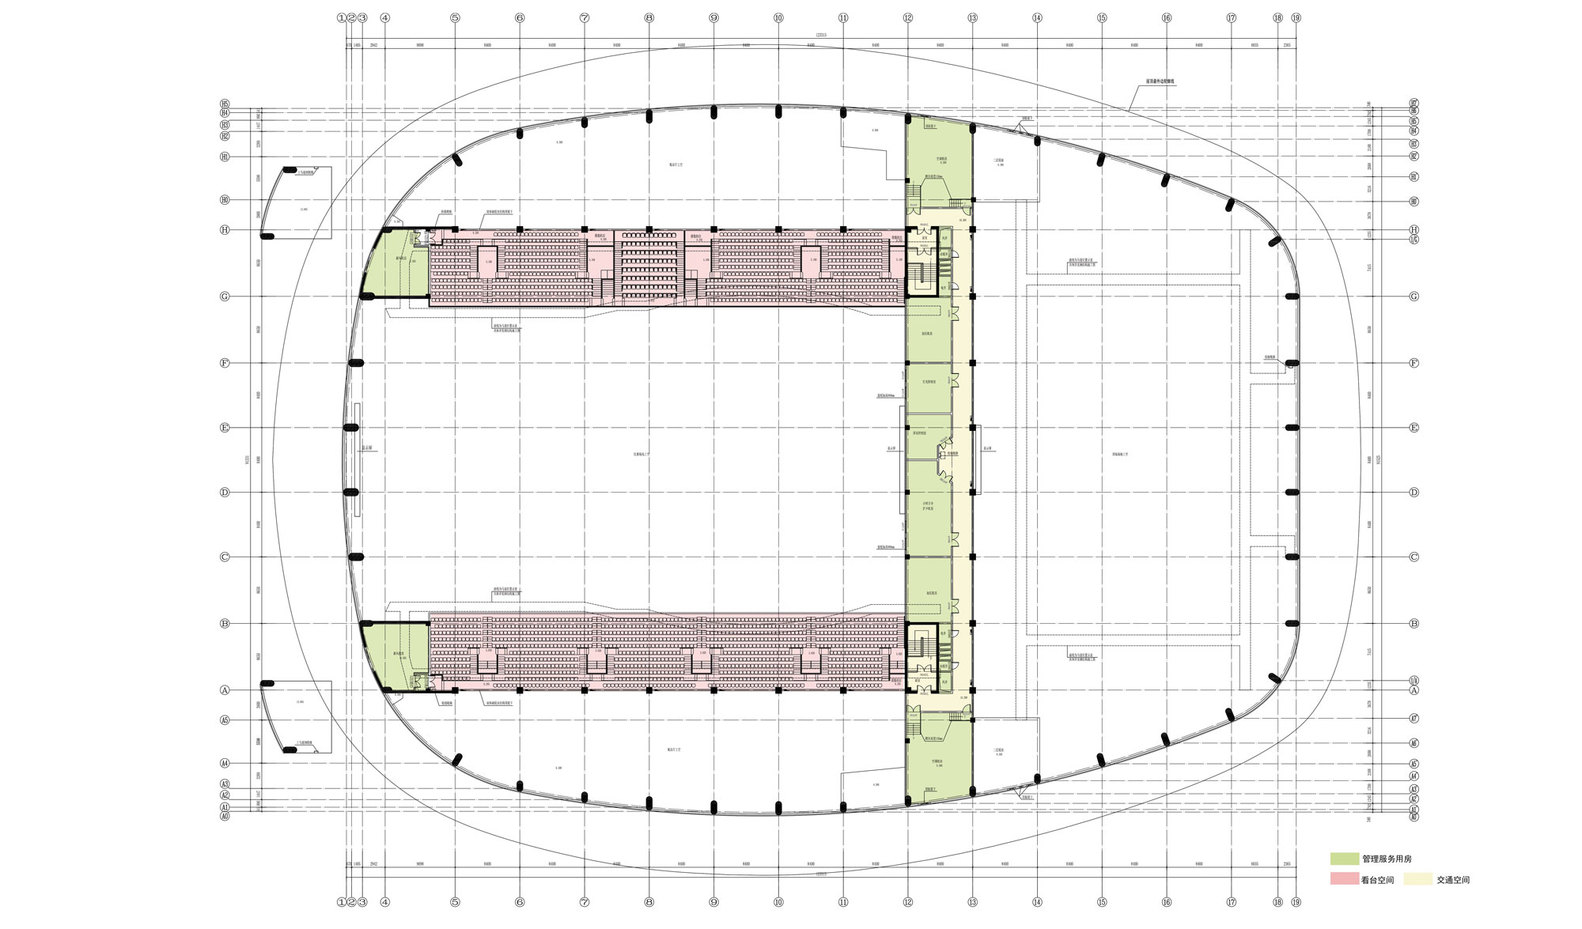 Ice Sports Center Of The 13th China National Winter Games,Hocky Place 3rd  Floor Plan